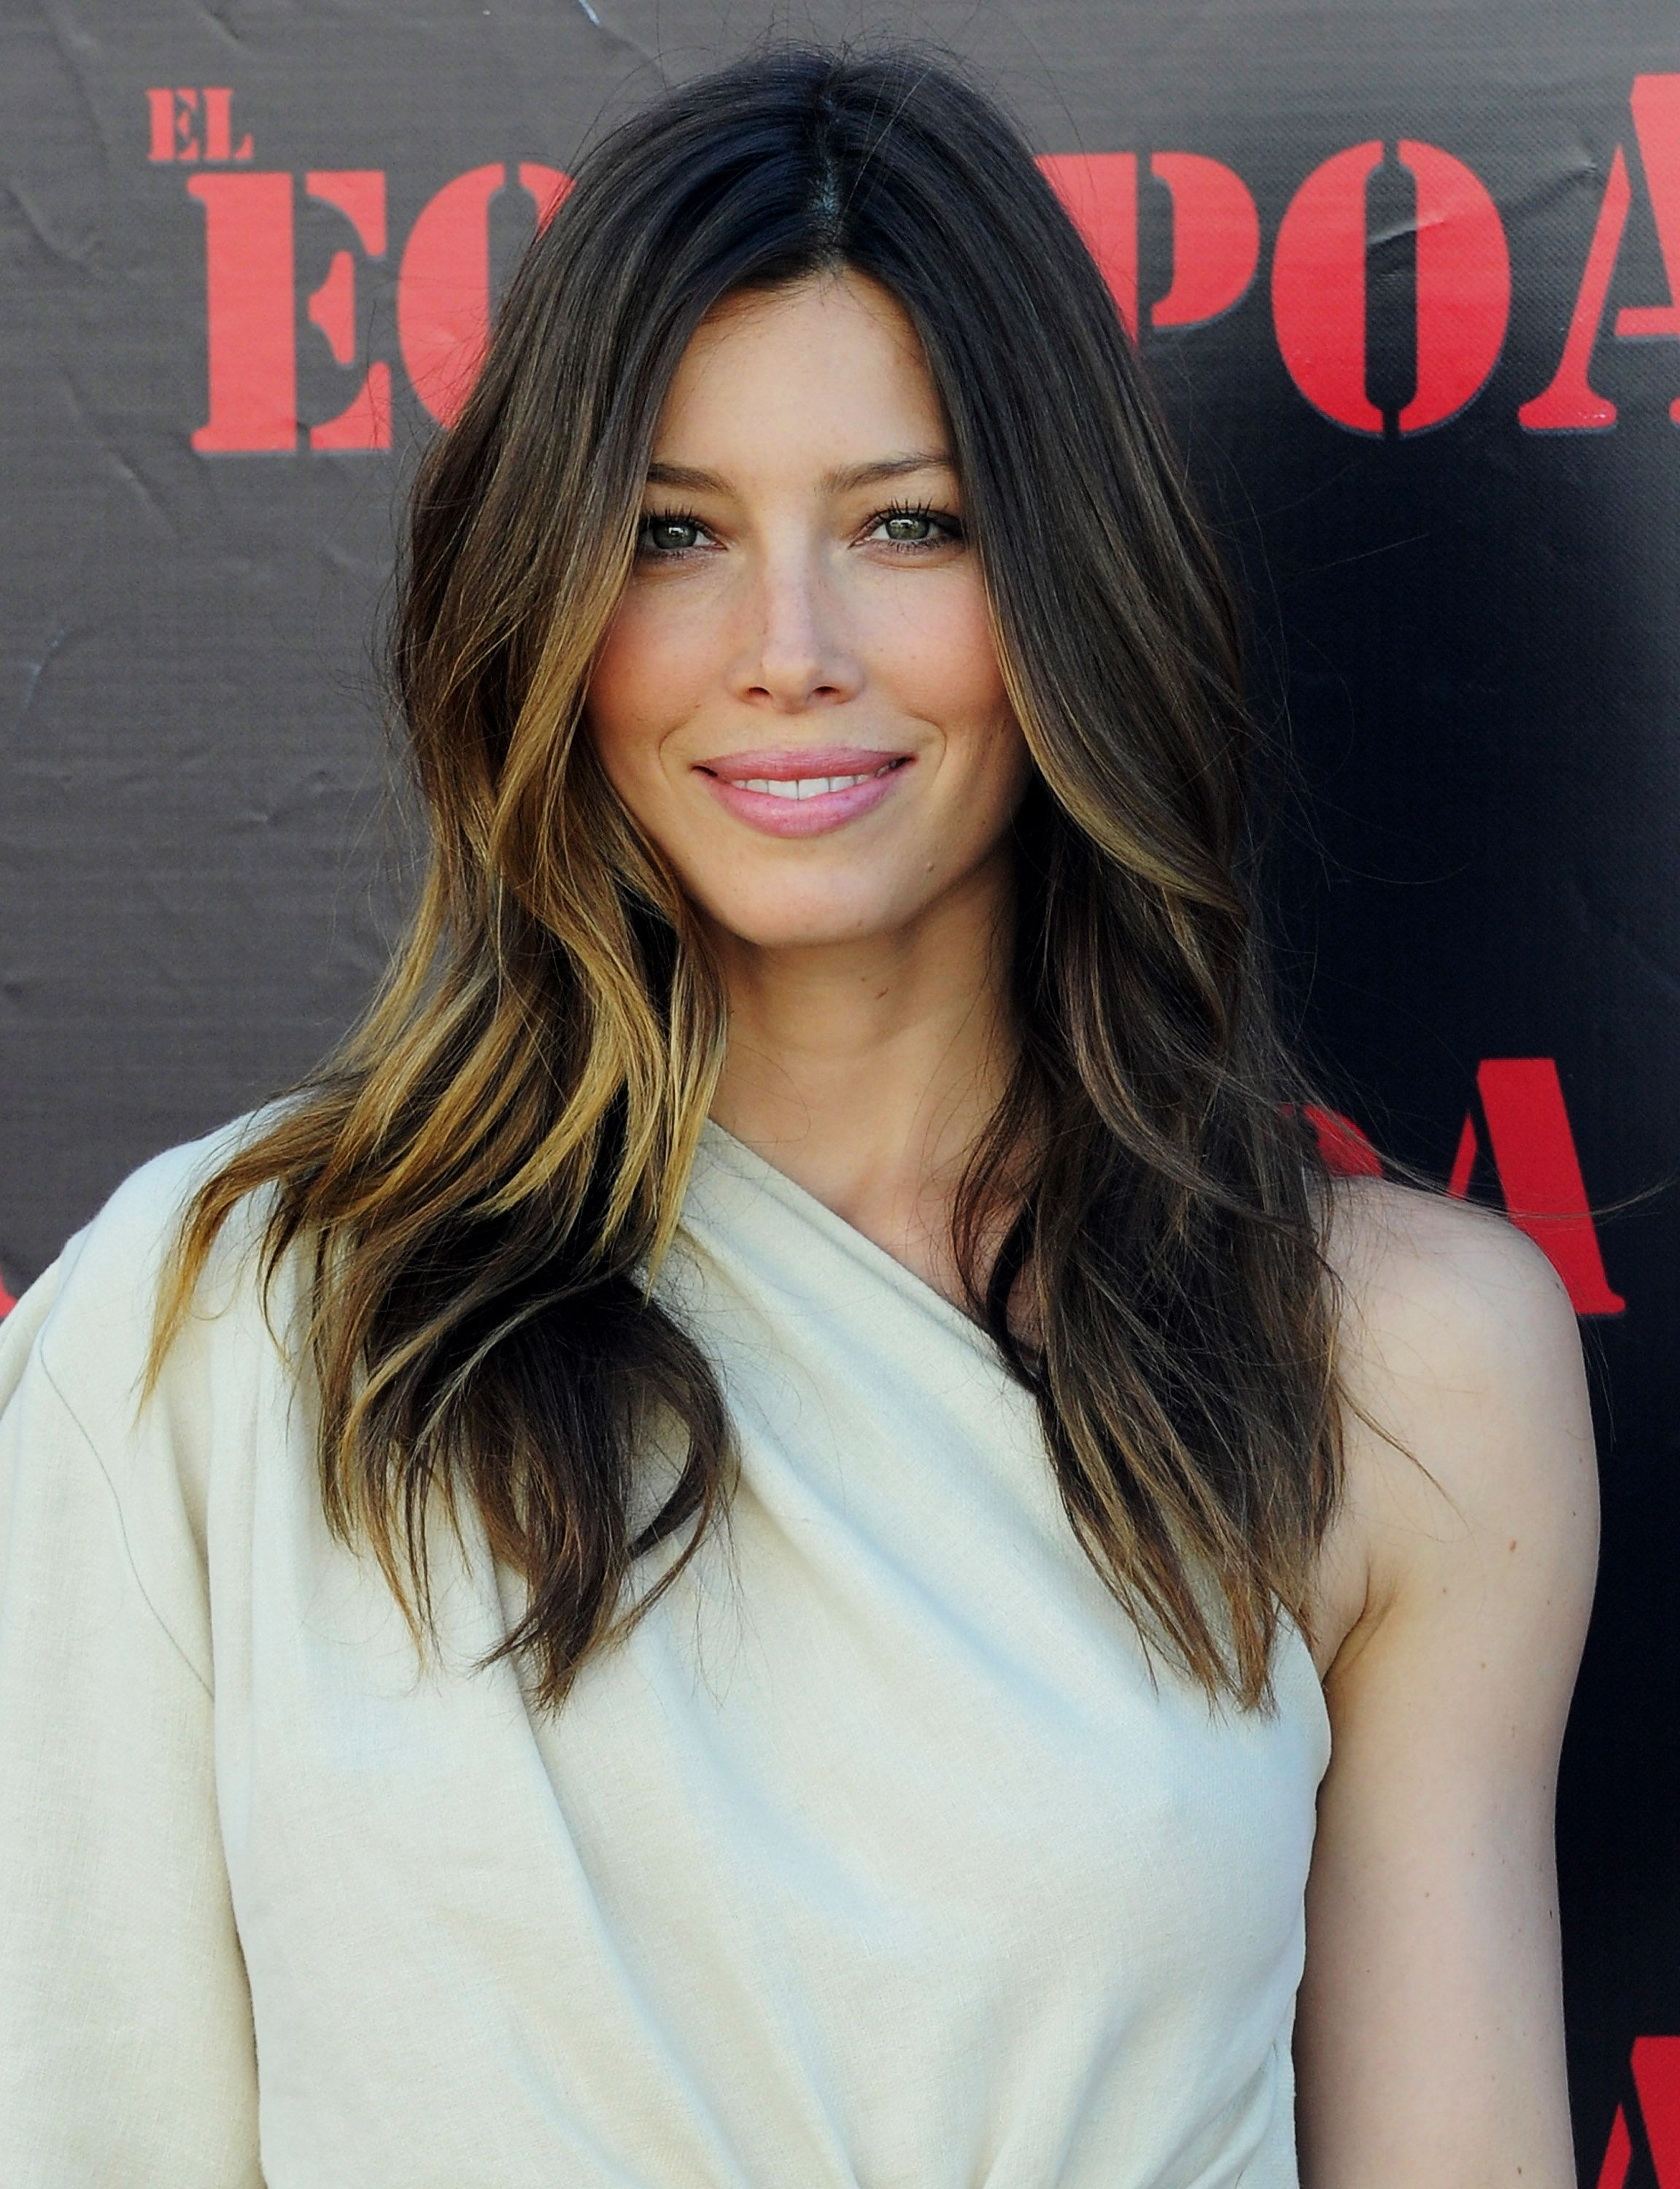 25 Balayage Hair Ideas Balayage Highlights And Hair Colors To Try